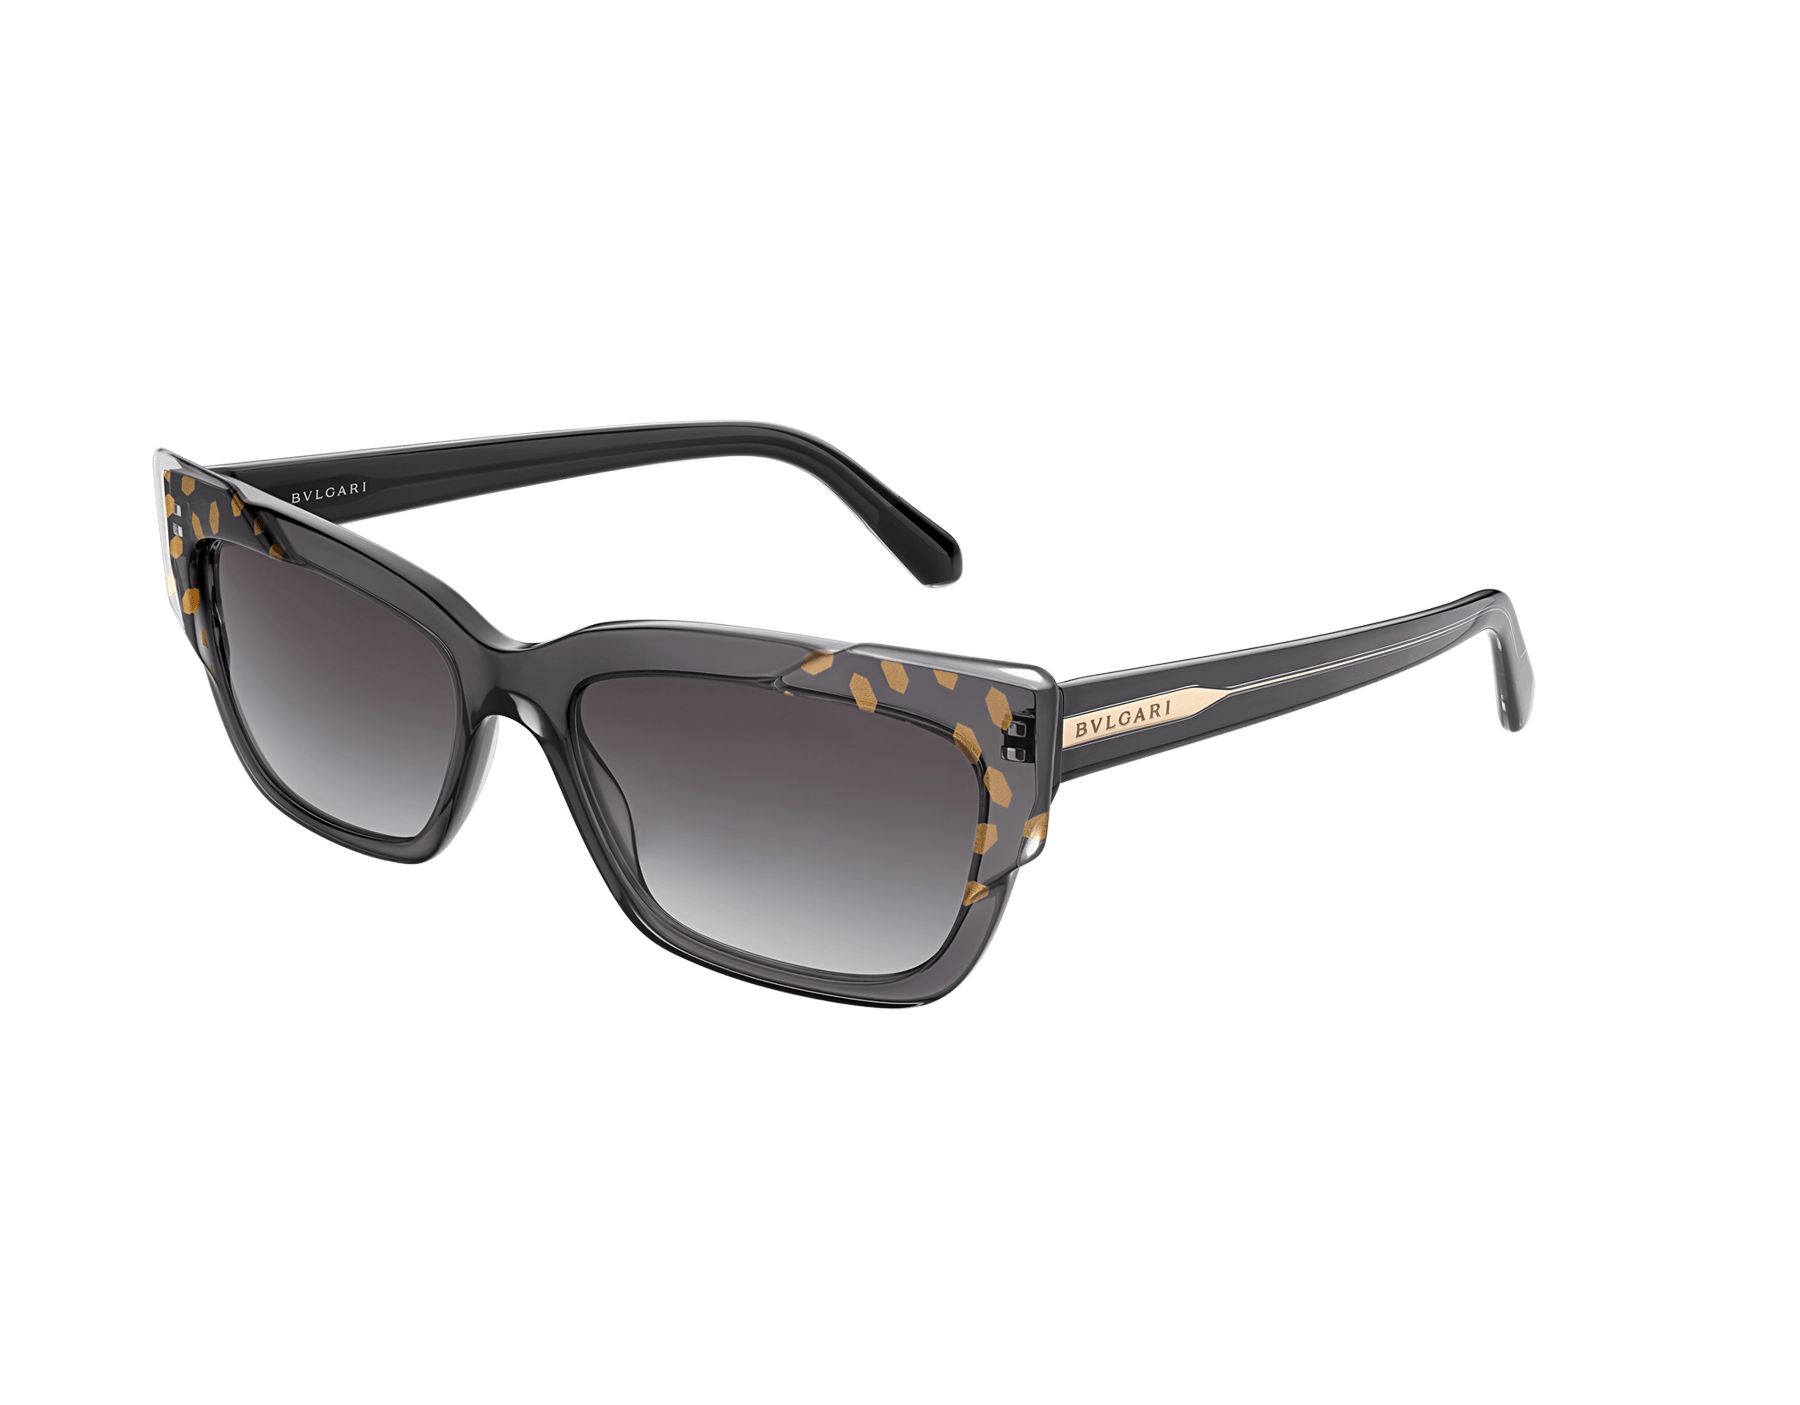 Bvlgari Serpenti Scale-blast rectangular cat-eye acetate sunglasses. 903735 image 1